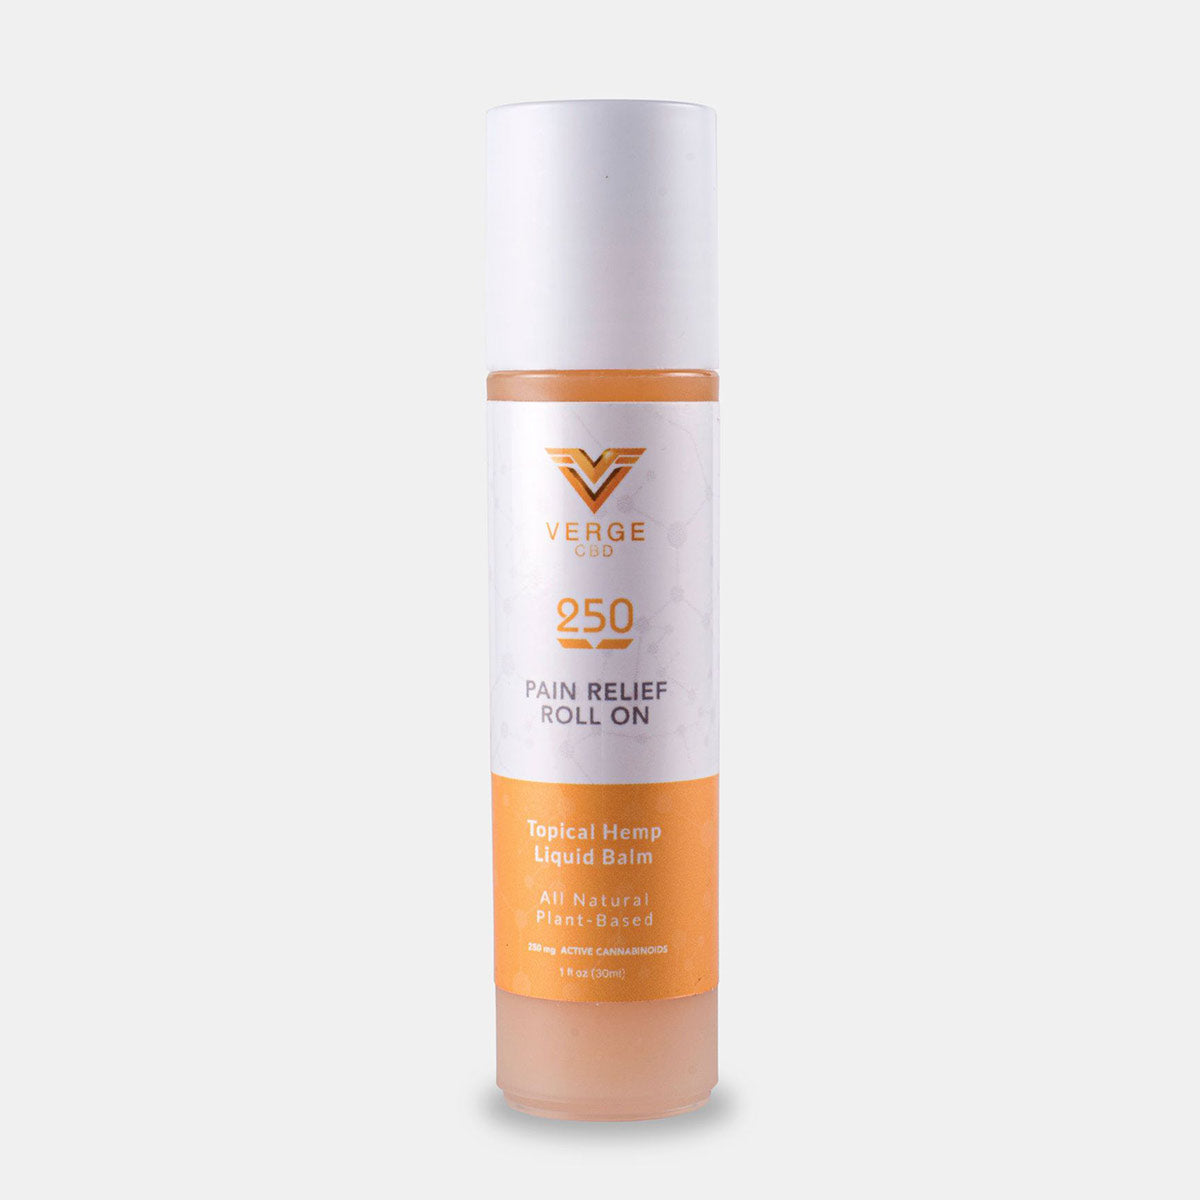 Verge Pain Relief Roll-On